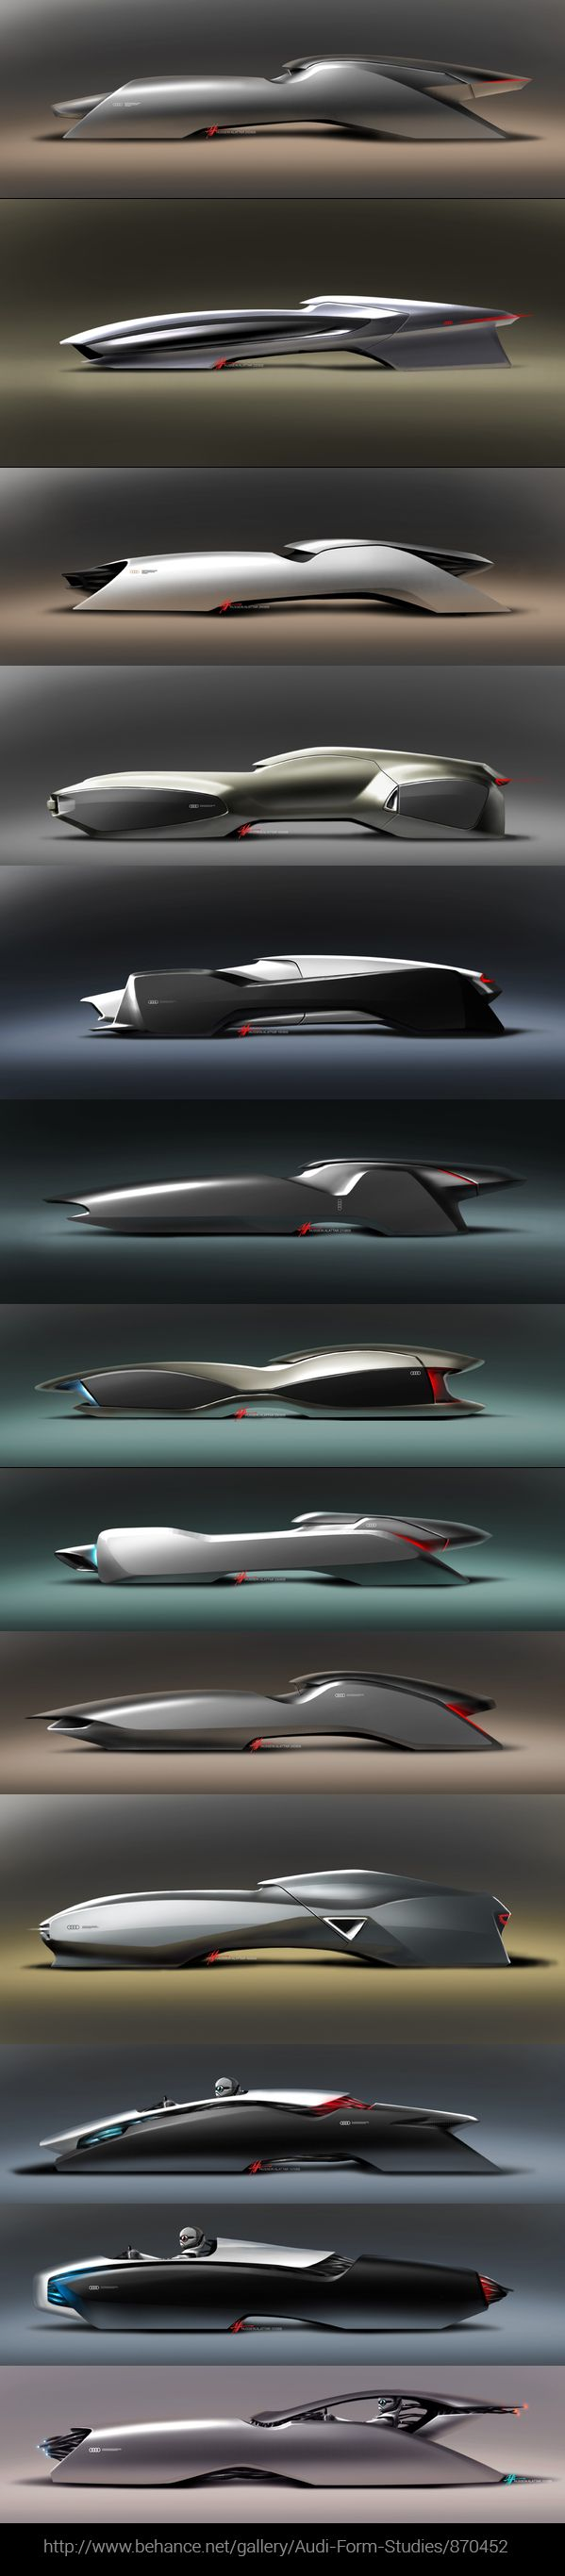 Audi Form Studies @www.audi.com/corporate/en/innovations.html@https://www.audi.co.uk/audi-innovation.html @ghatrifi